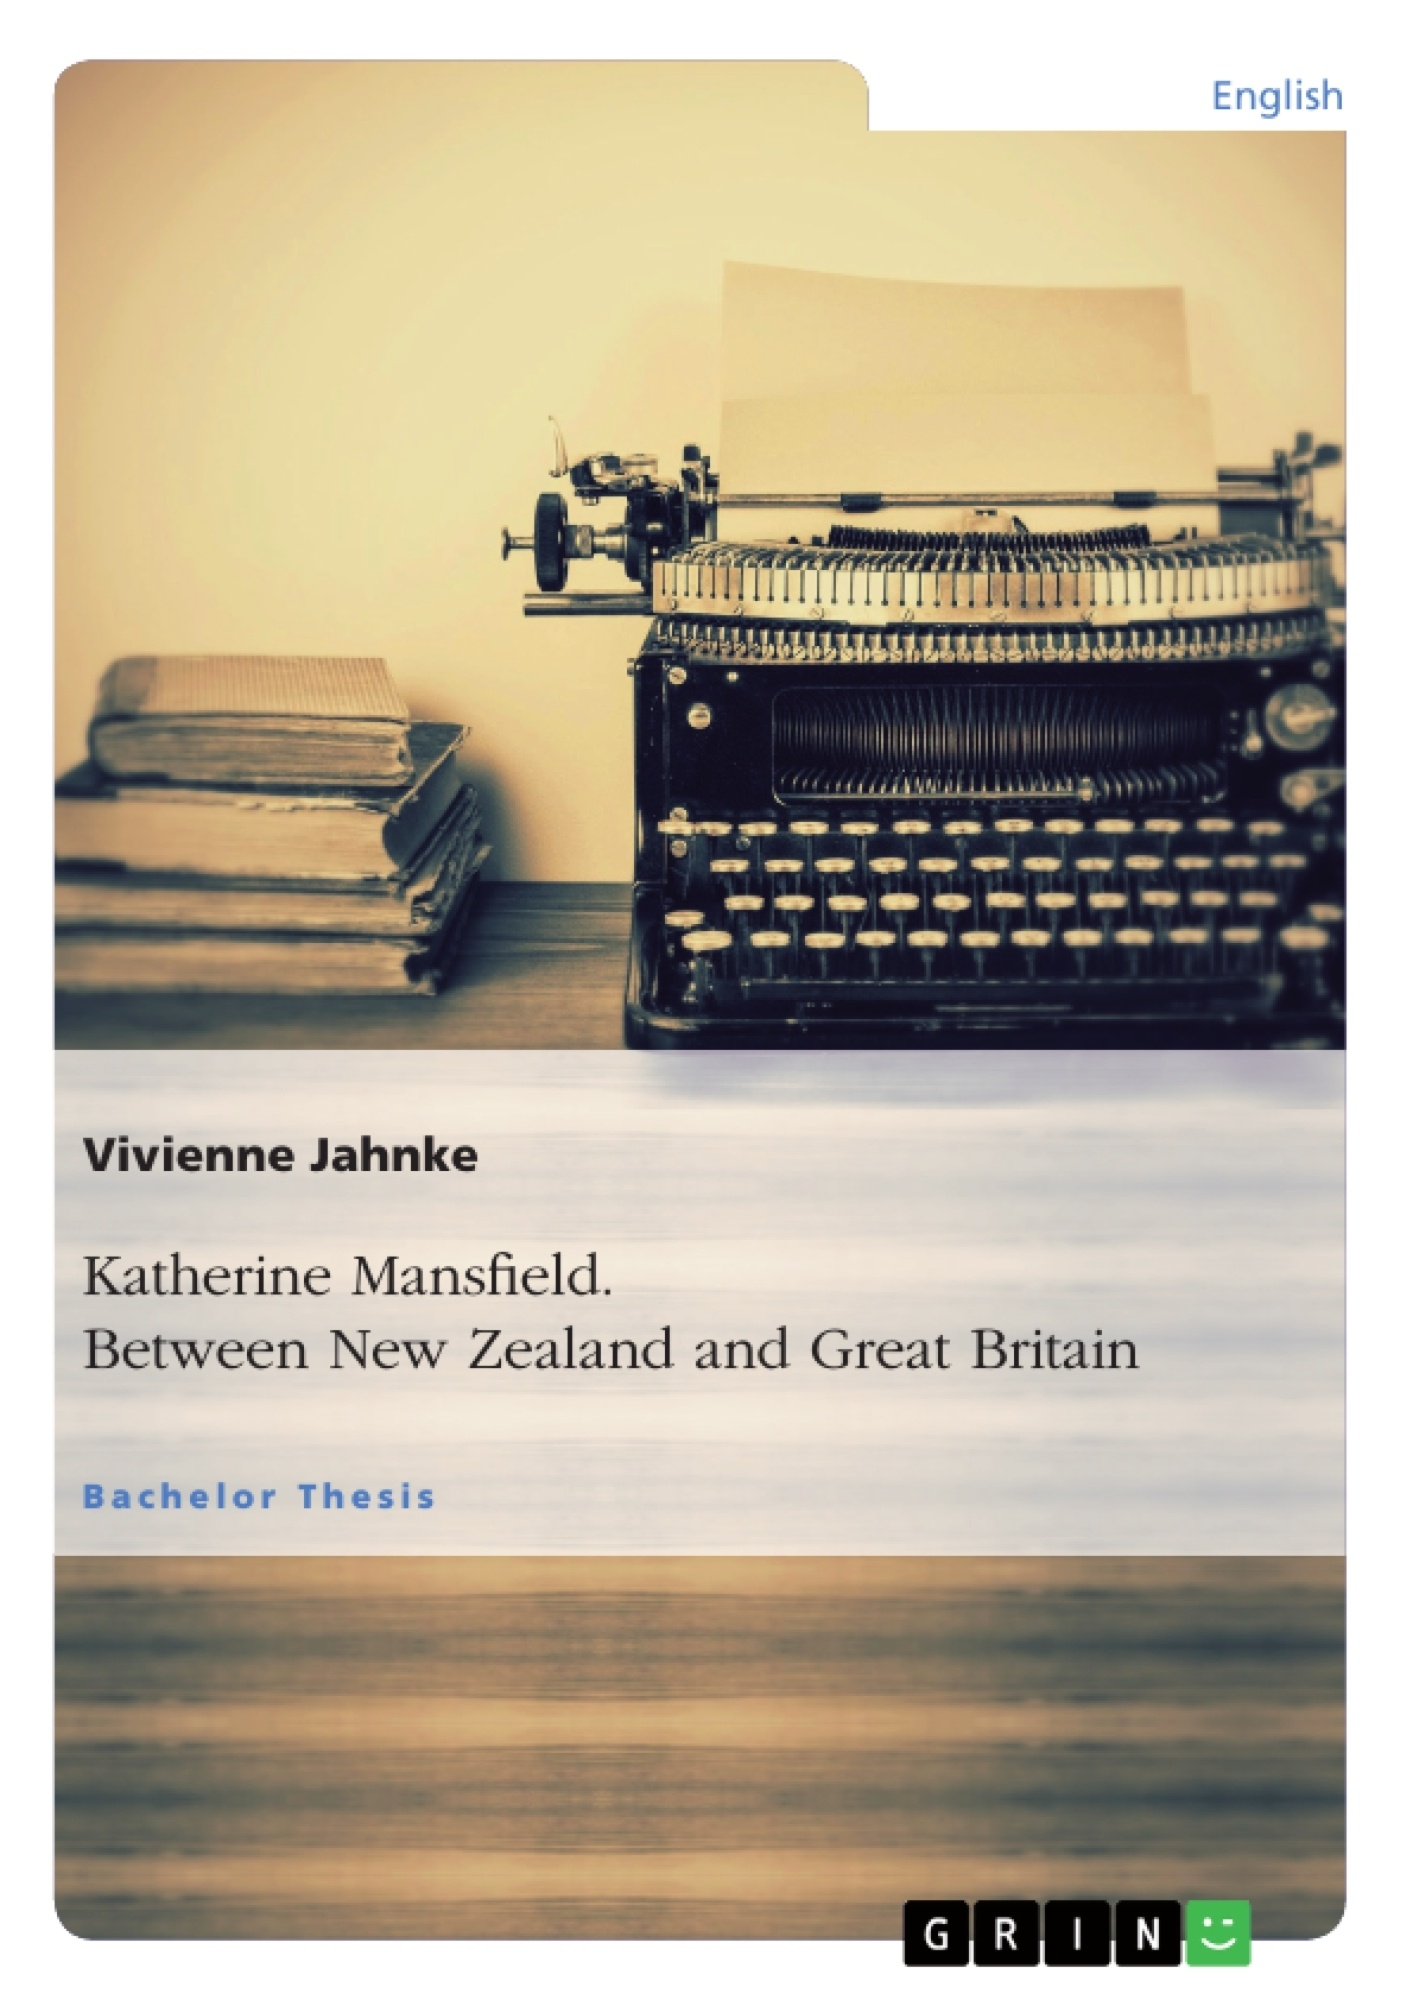 geography of great-britain essay About study research people news events john b thornes laboratory  social media careers and employability student experiences for current.